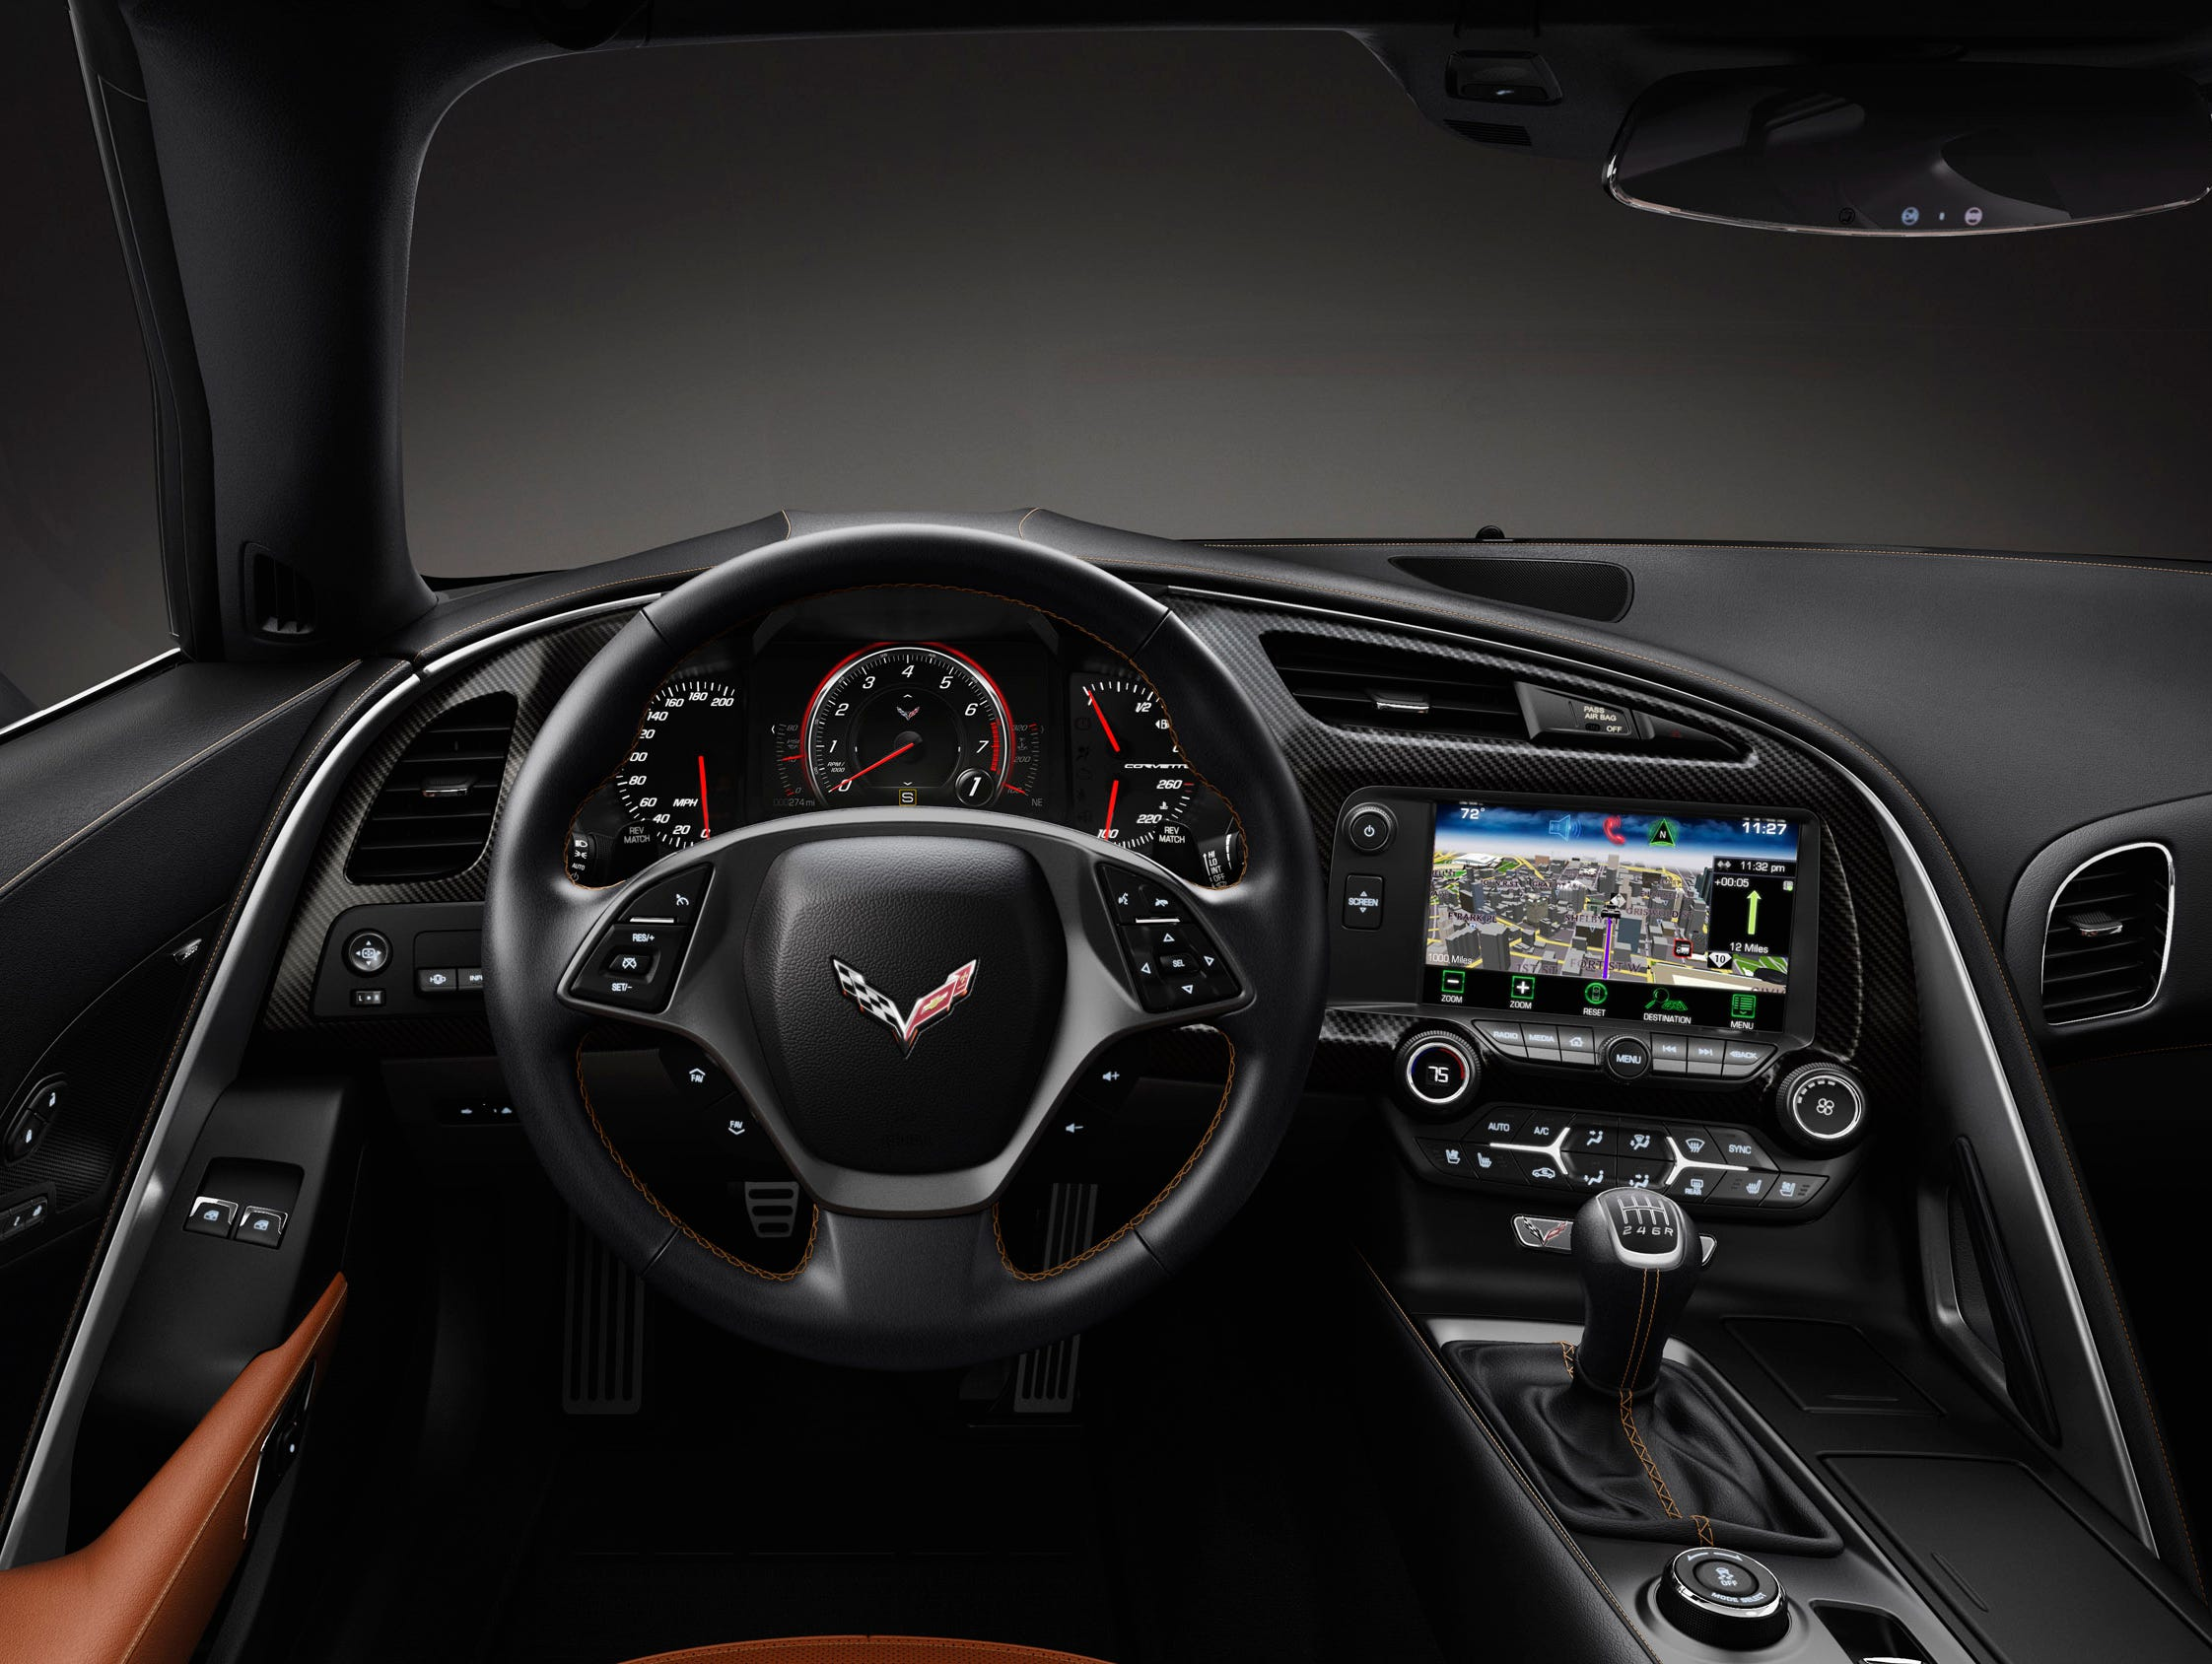 The 2014 Corvette's configurable screen dominates the instrument cluster. The cluster can be supplemented with optional head-up display.